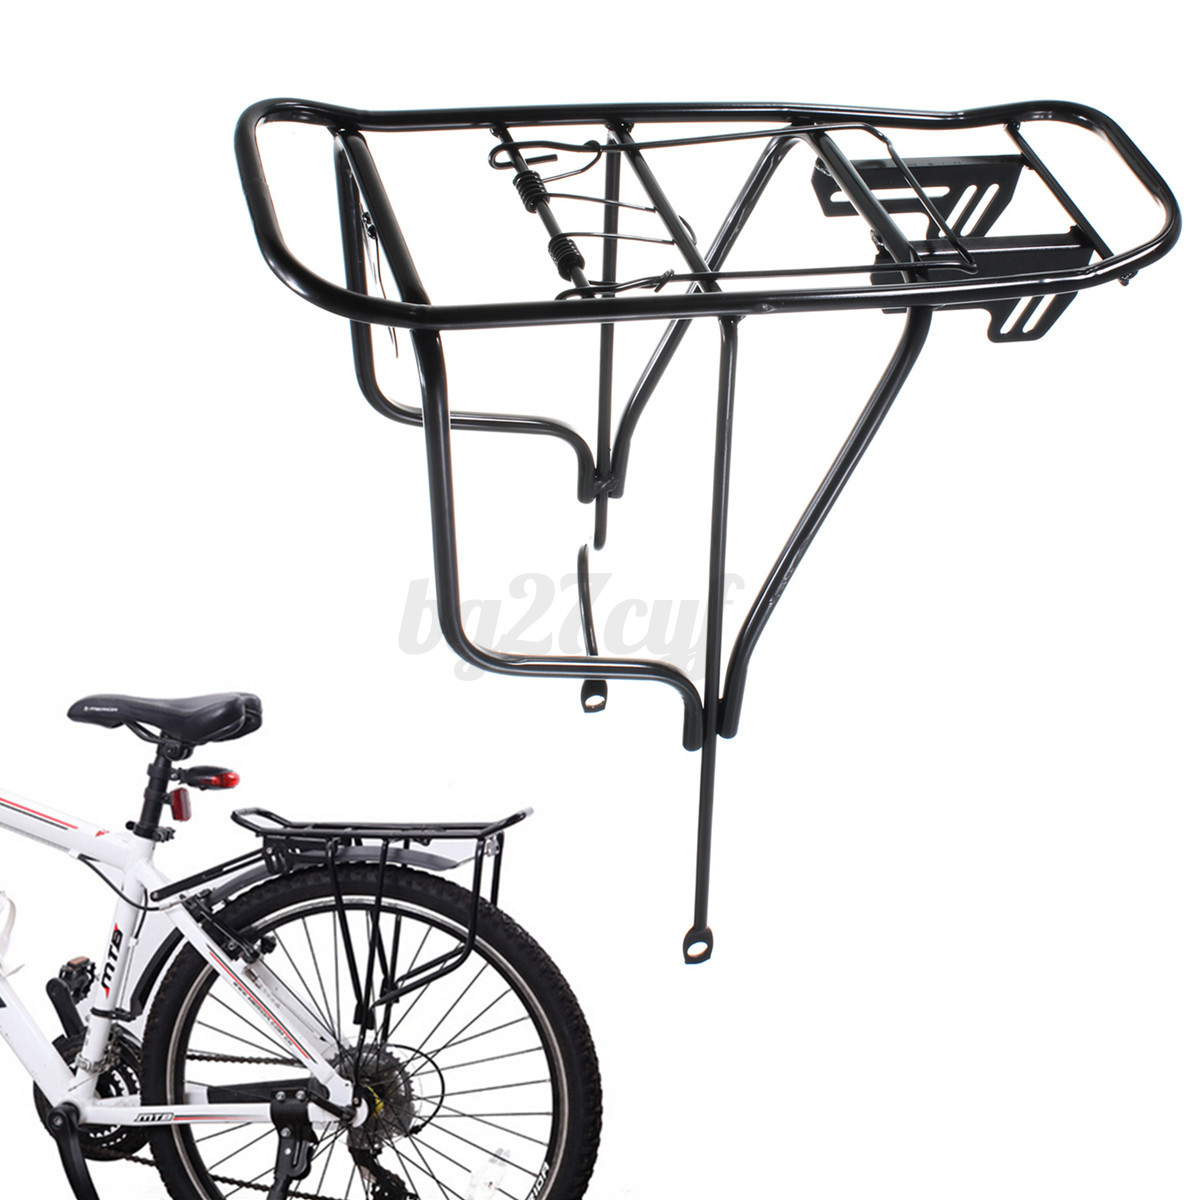 Mtb Bicycle Luggage Carrier Mountain Bike Rear Rack Seat